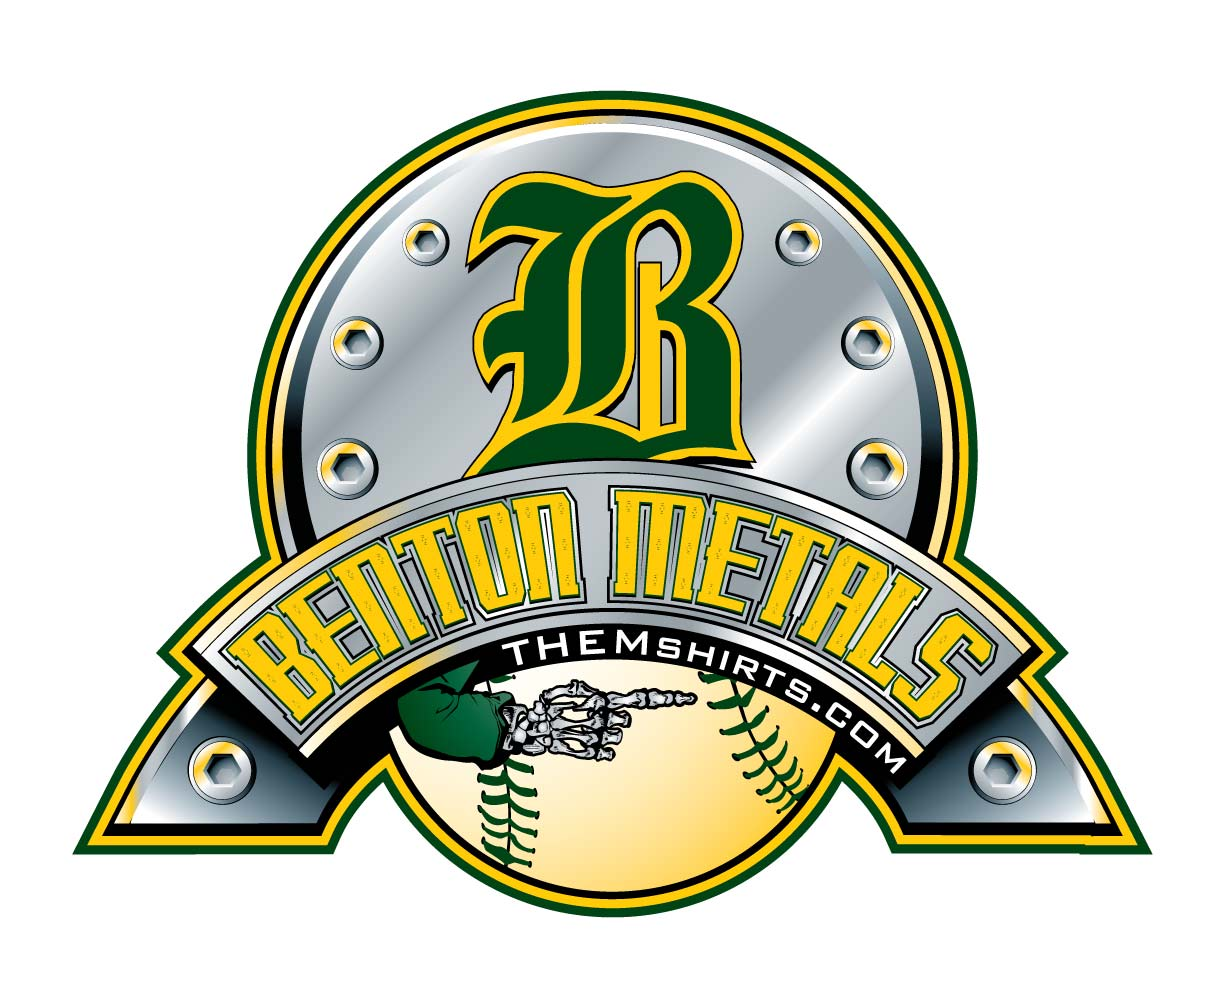 BENTON METALS -- CINCY, OHO